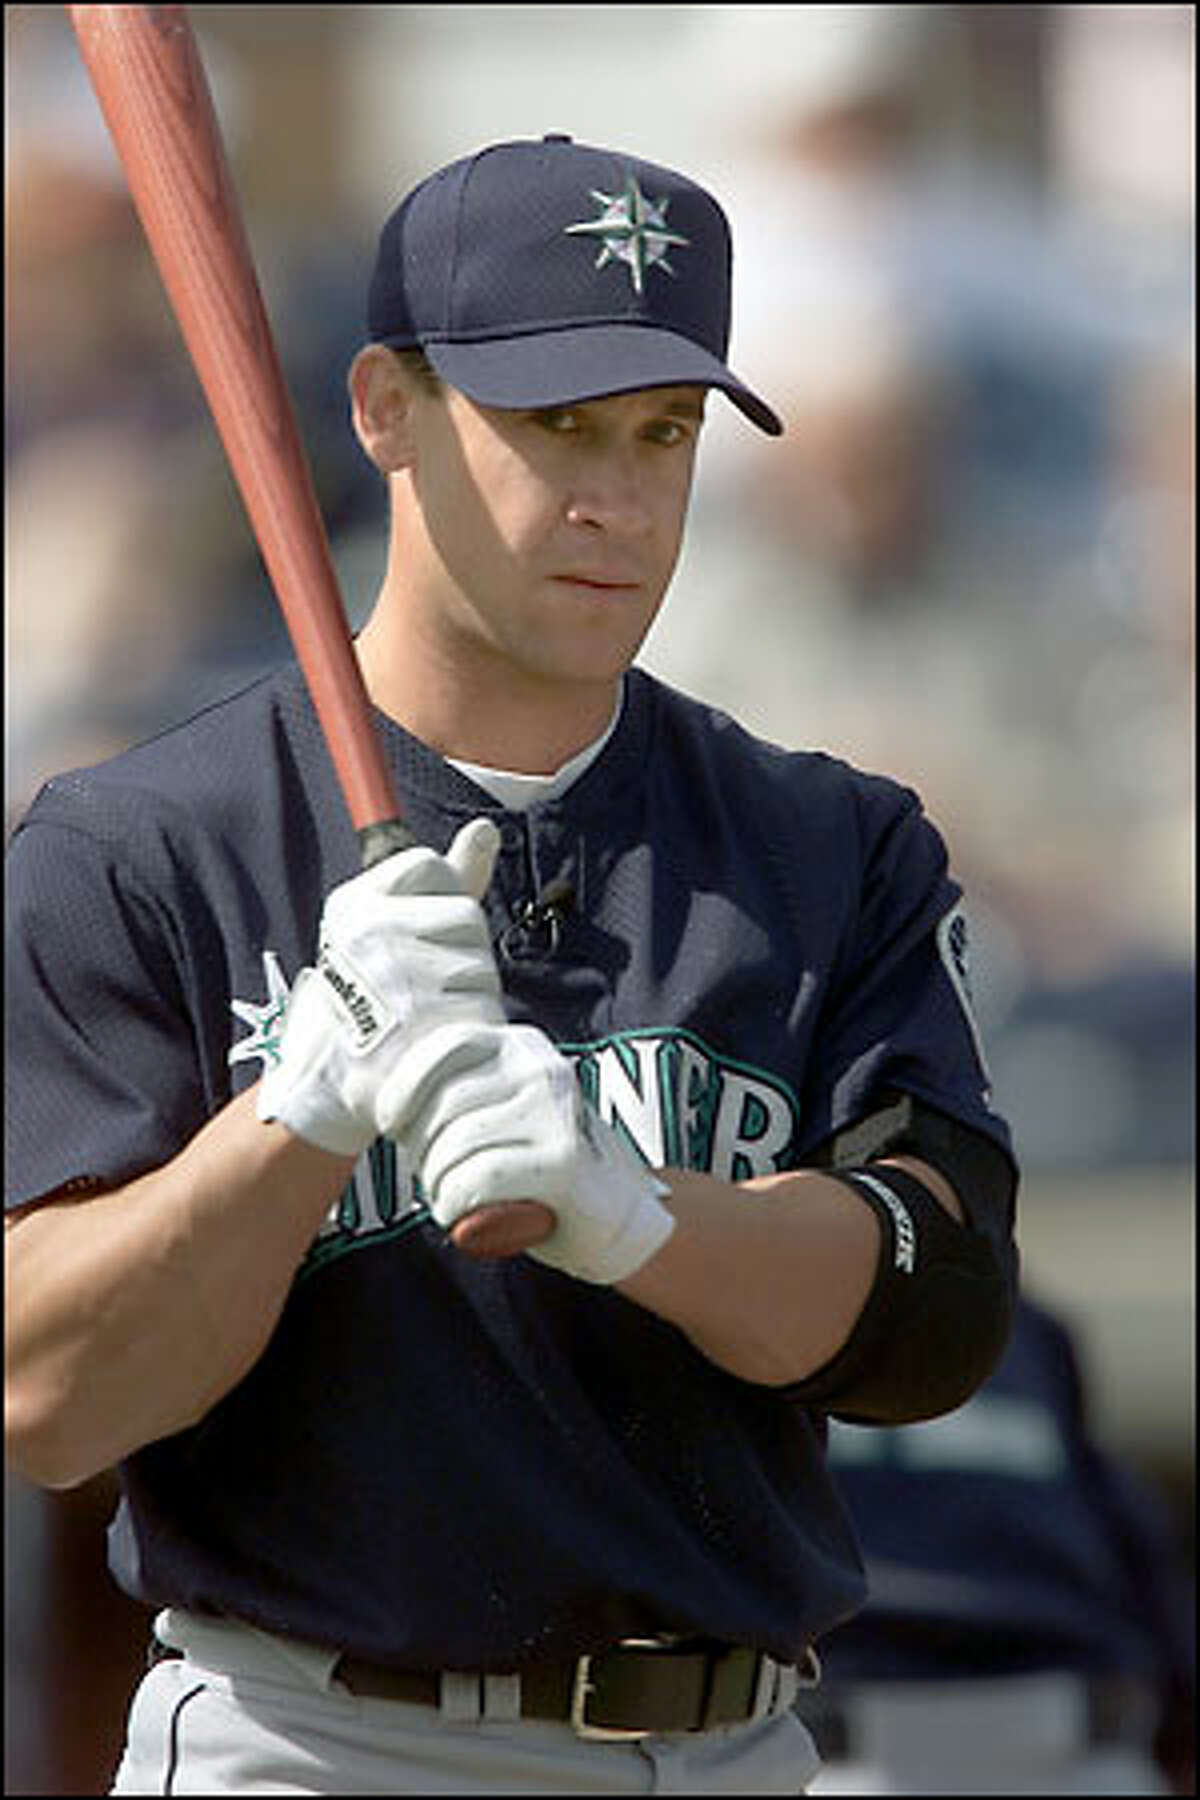 New 2B Bret Boone is expected to play a large role in the M's offense this year.